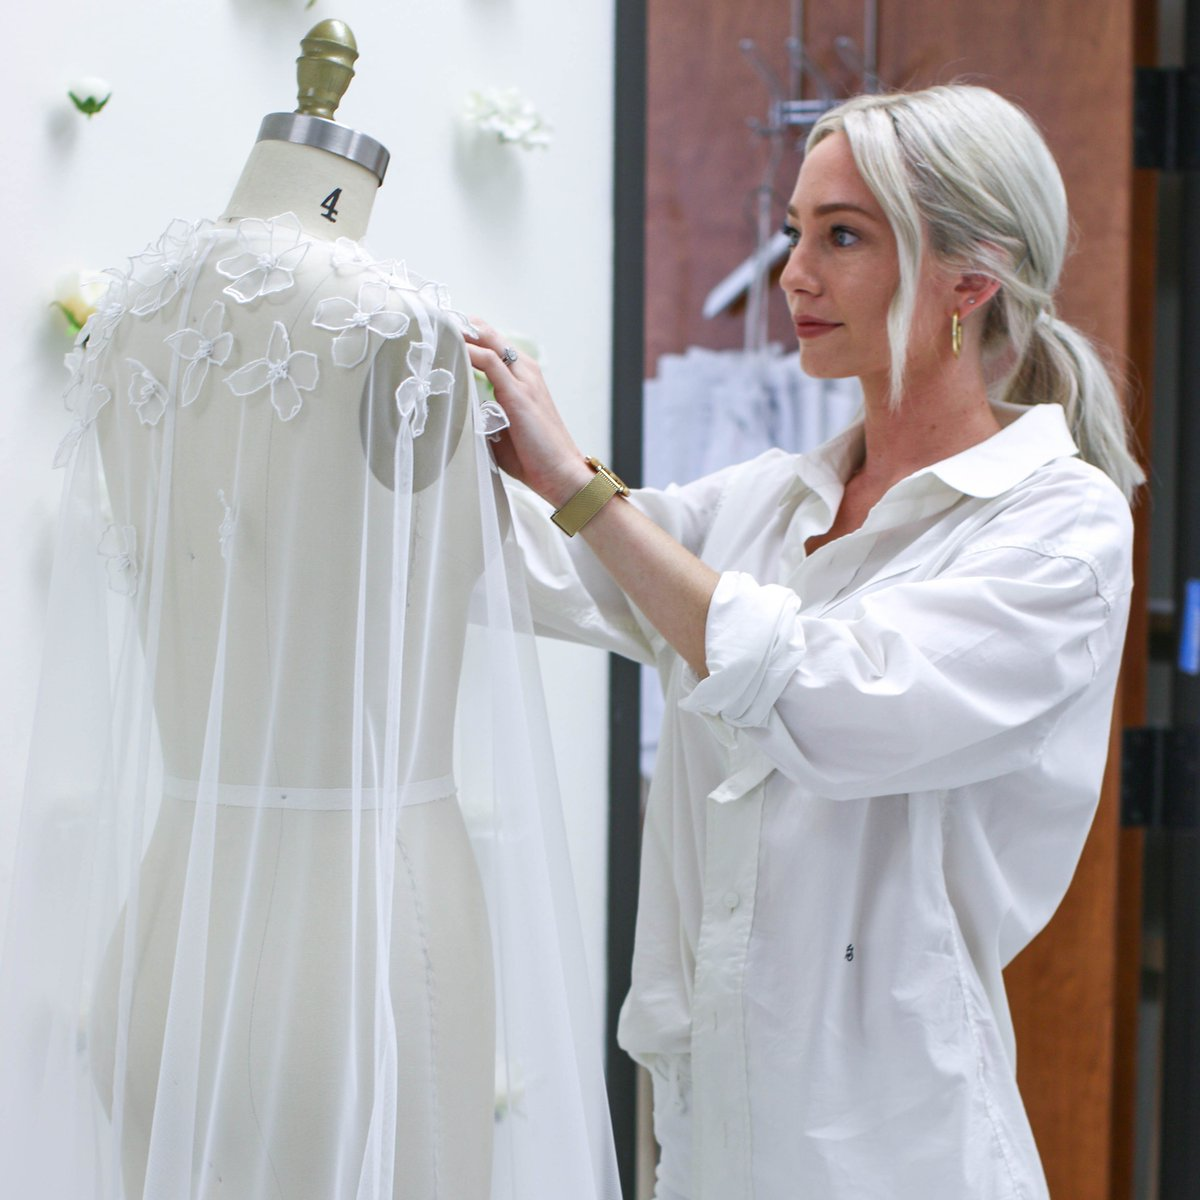 University Of North Texas On Twitter Elizabeth Leese Took A Leap Of Faith In 2016 Months After She Graduated From Unt With A Untcvad Fashion Design Degree Since Opening The Doors To